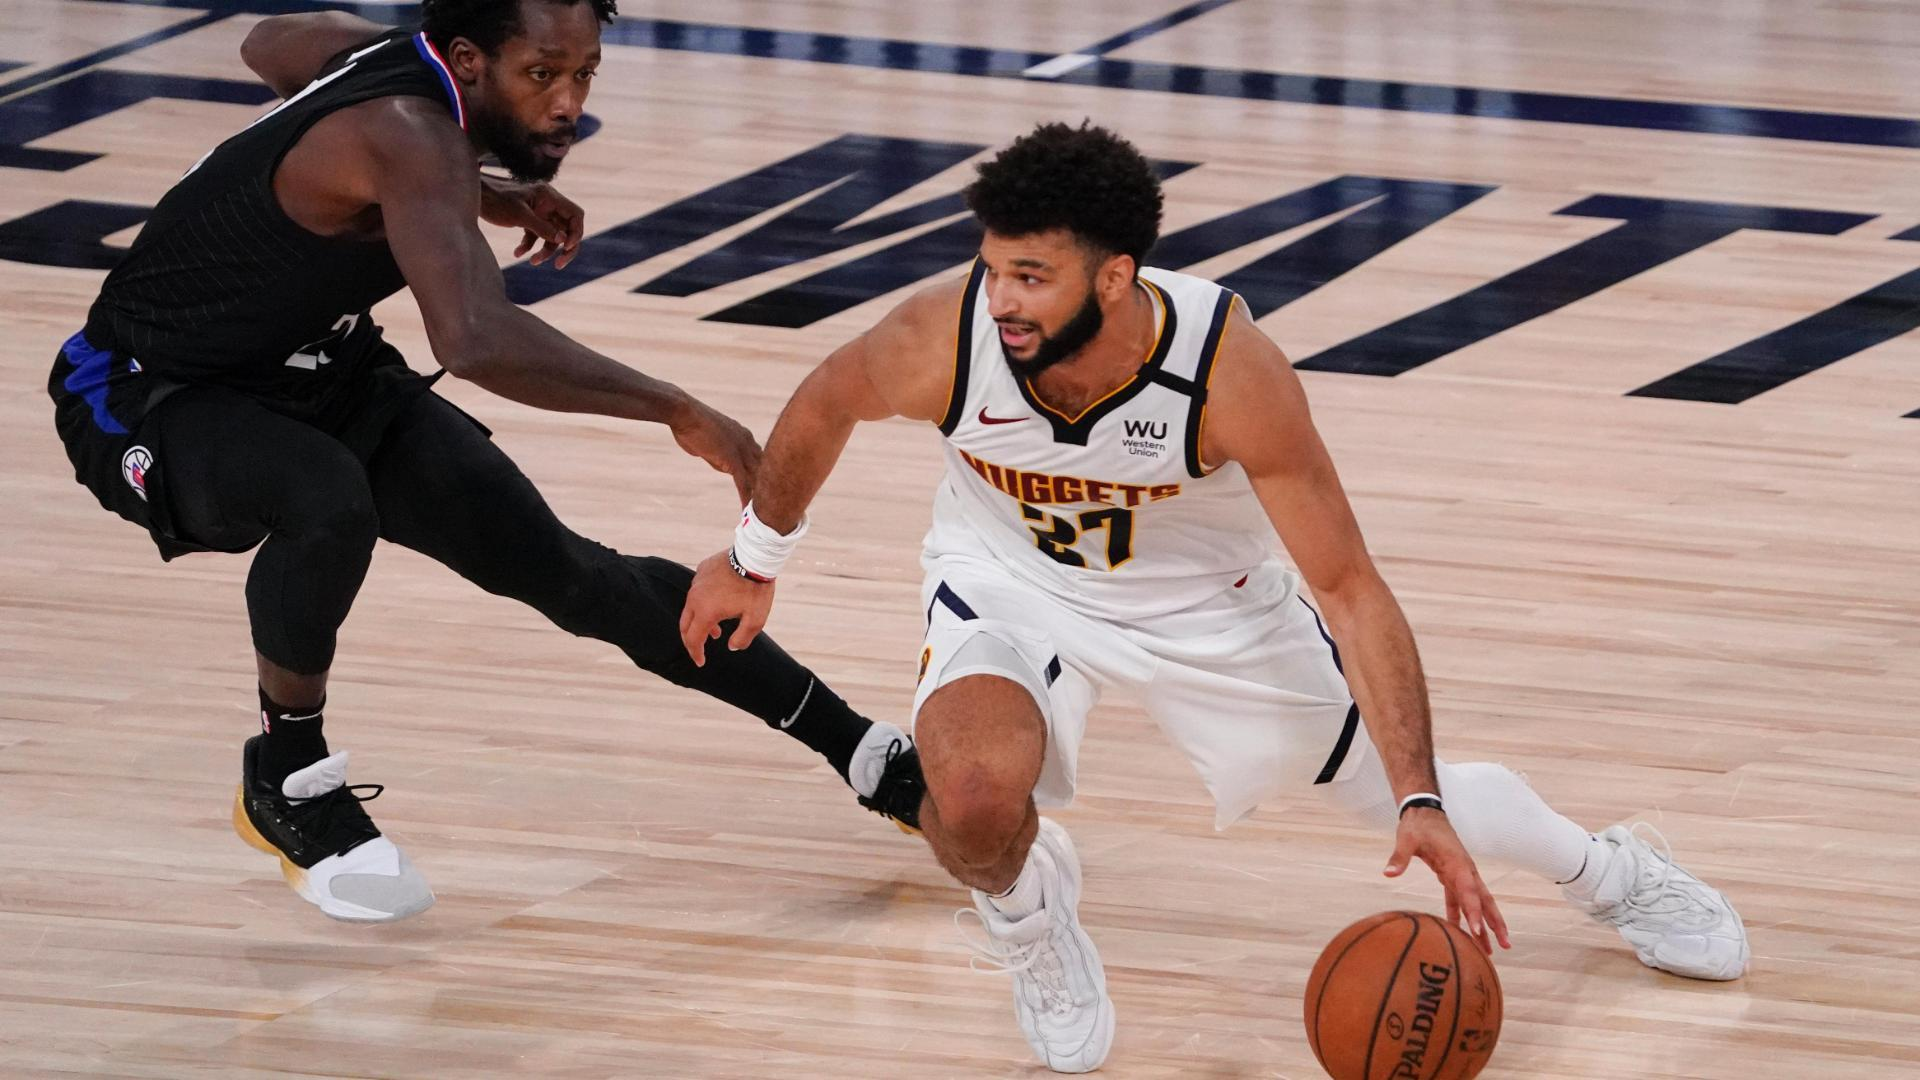 Nuggets even up series with Game 2 win vs. Clippers